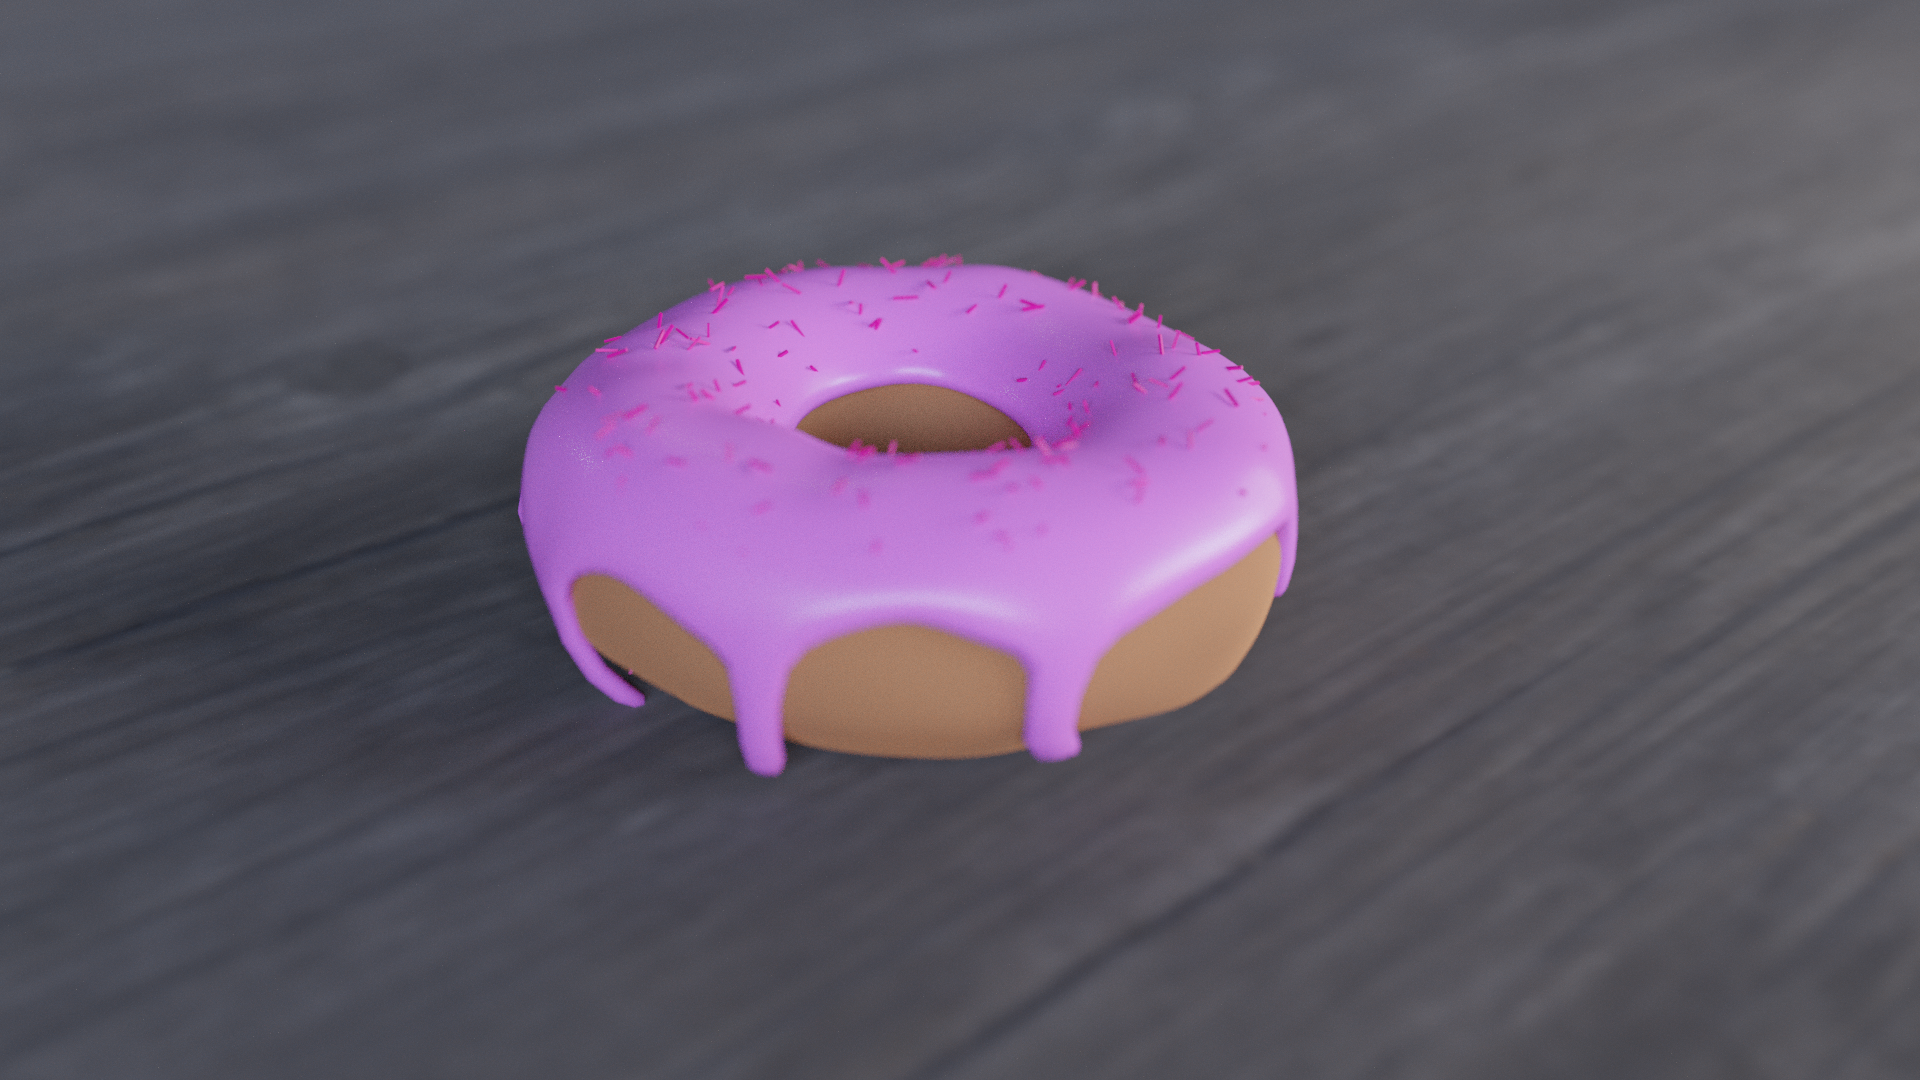 Donut preview image 1